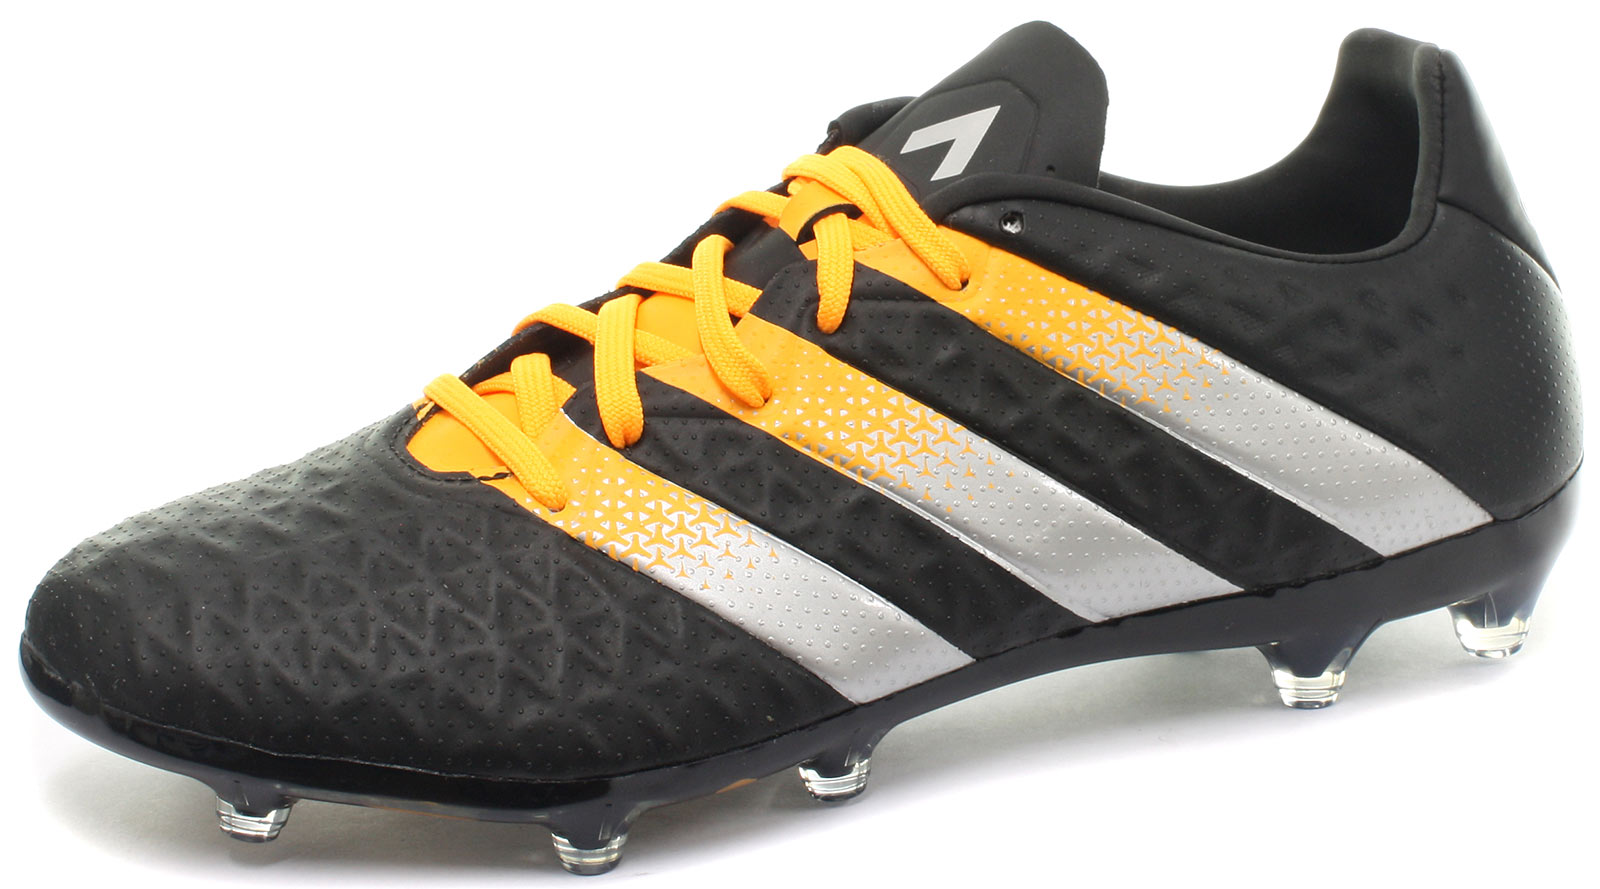 online store 23158 4a851 spain image is loading new adidas ace 16 2 fg ag mens 39014 ad7c9